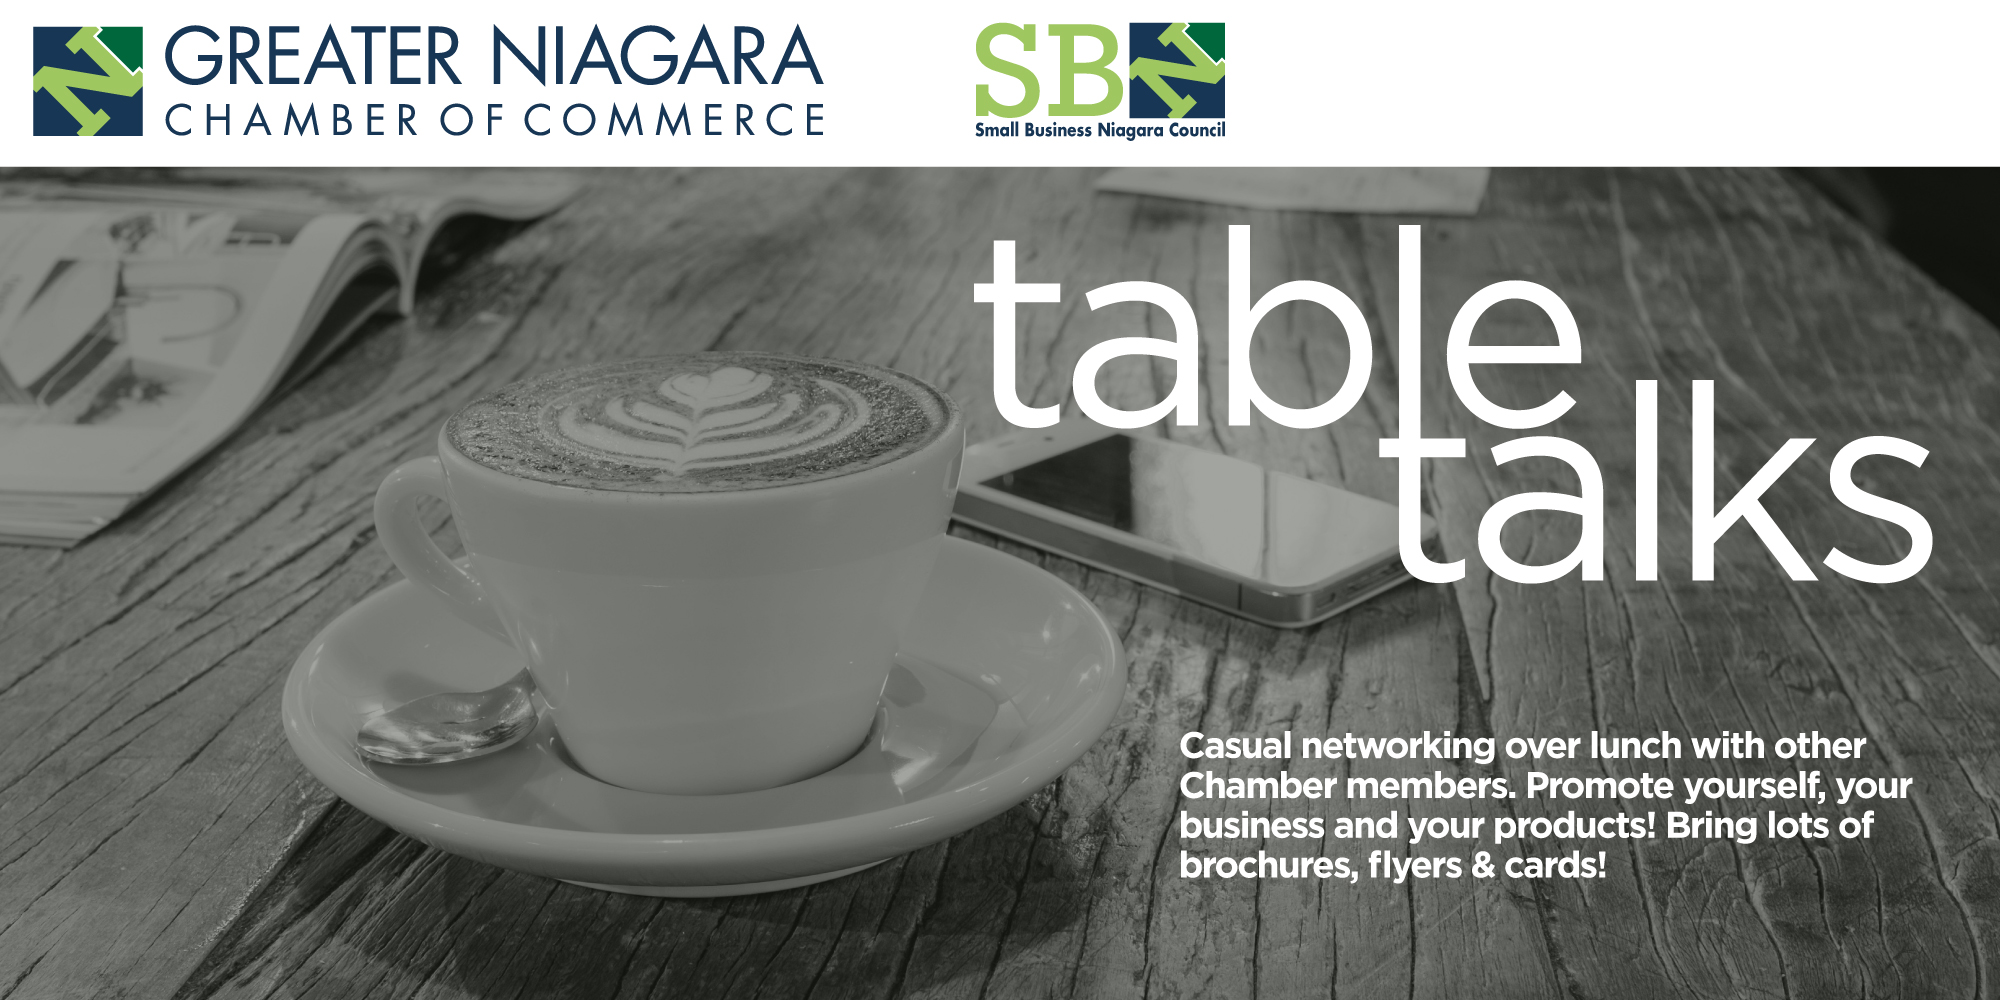 Introducing: Table Talks!  This new event is an excellent opportunity to network with other GNCC members over lunch and discuss your business and products! This month join us at Johnny Rocco's in St. Catharines, starting at 12:00pm.  Make sure to bring lots of business cards and promotional material!	*Please note, 48 hour cancellation notice is required for credit or refund. Cancellations received after deadline will be charged full amount.*